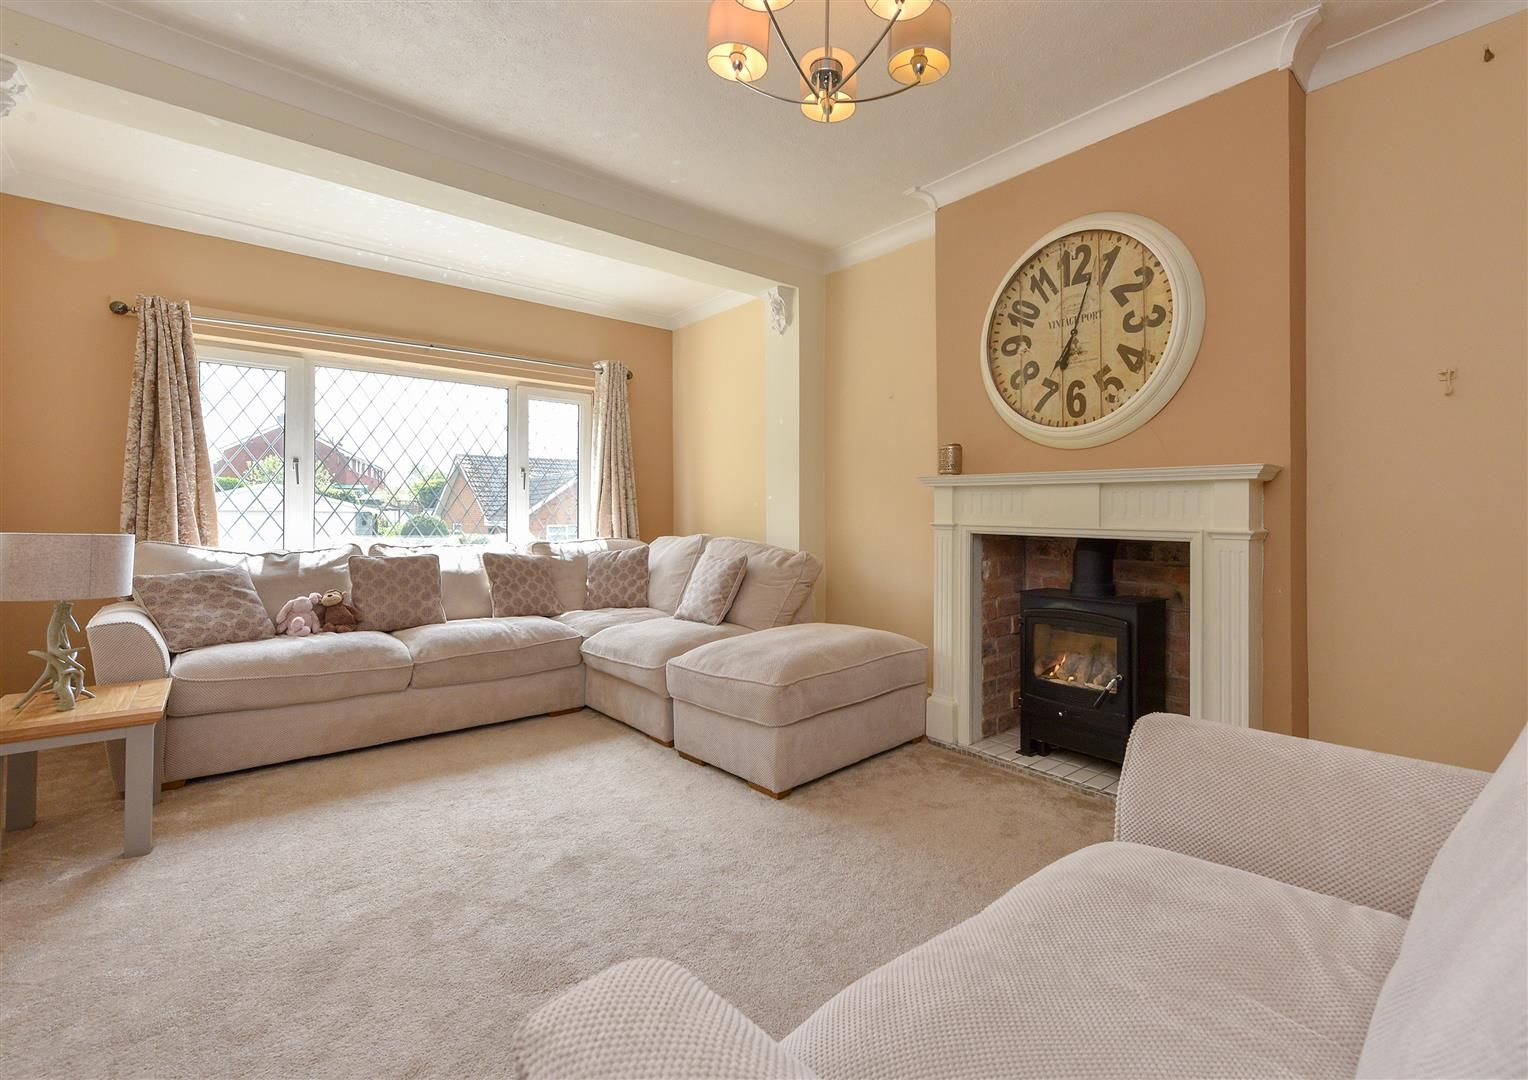 4 bed detached for sale in Swindon  - Property Image 3